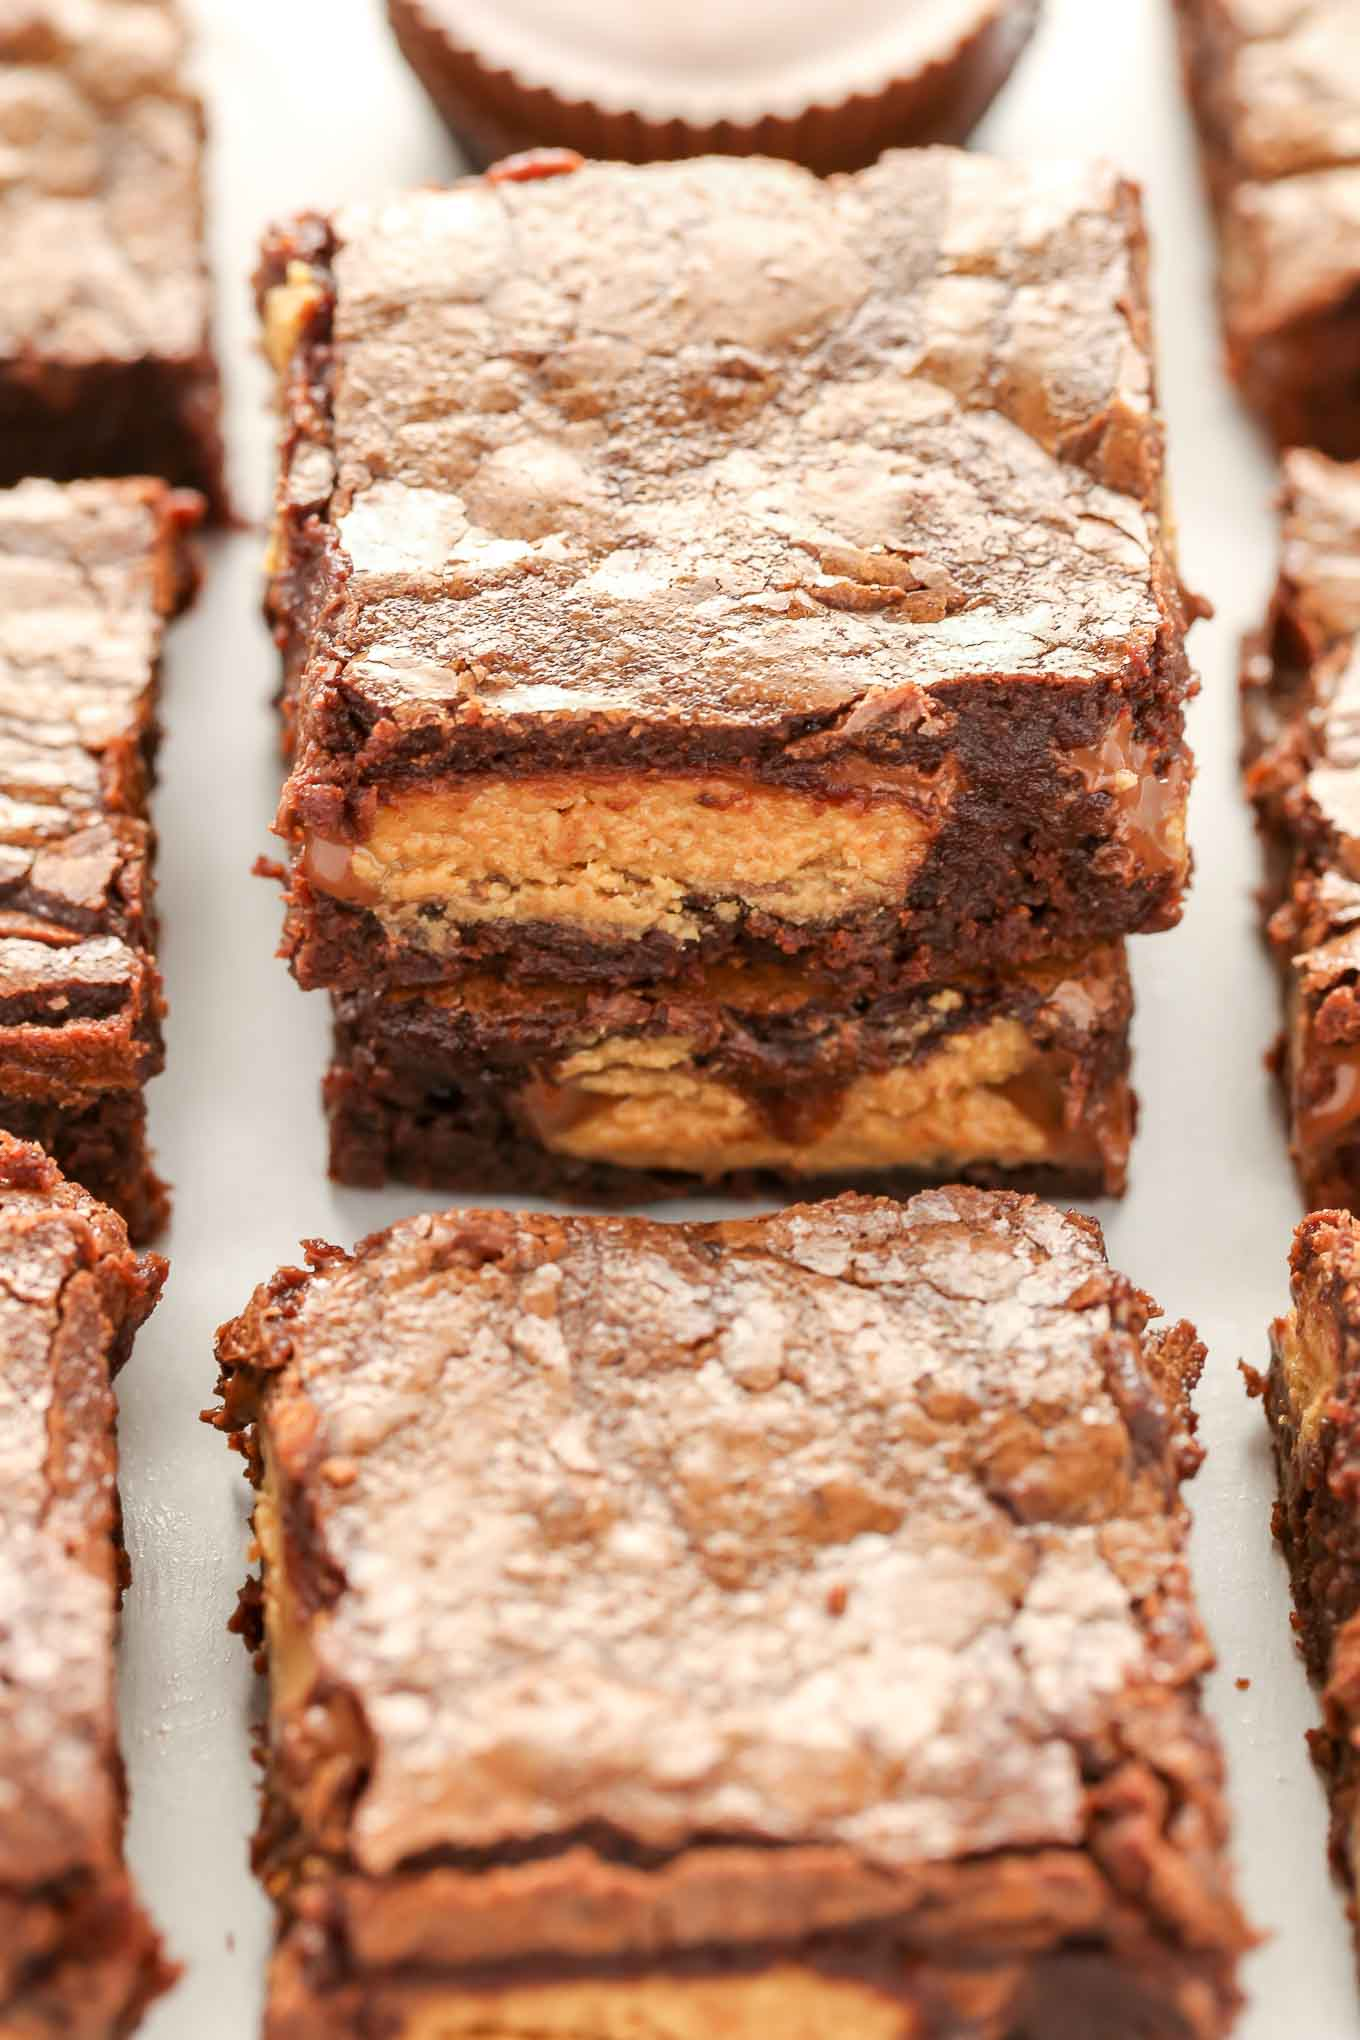 These Fudgy Peanut Butter Cup Brownies start with an easy homemade brownie recipe and are stuffed with peanut butter cups.  These fudgy brownies are the ultimate dessert!